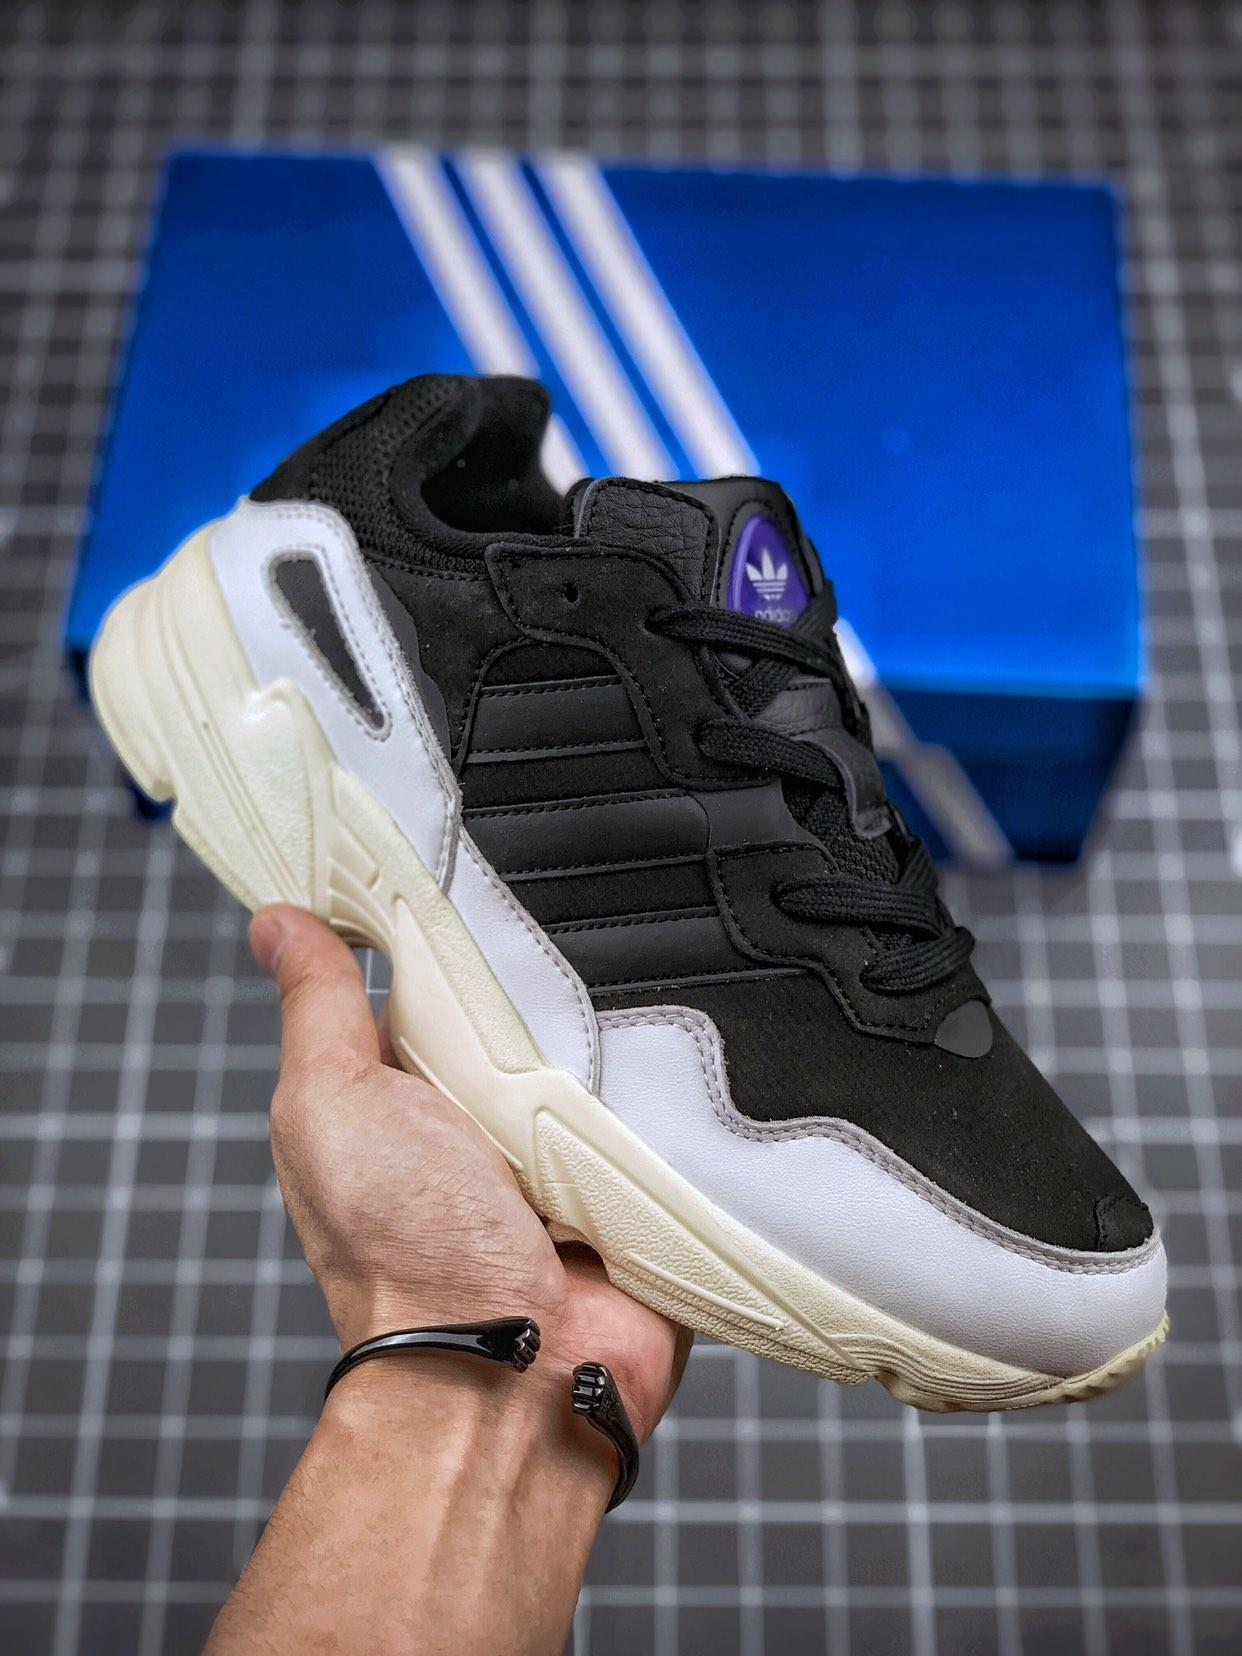 Adidas Originals YUNG-96 官方上架 经典元素 米白黑